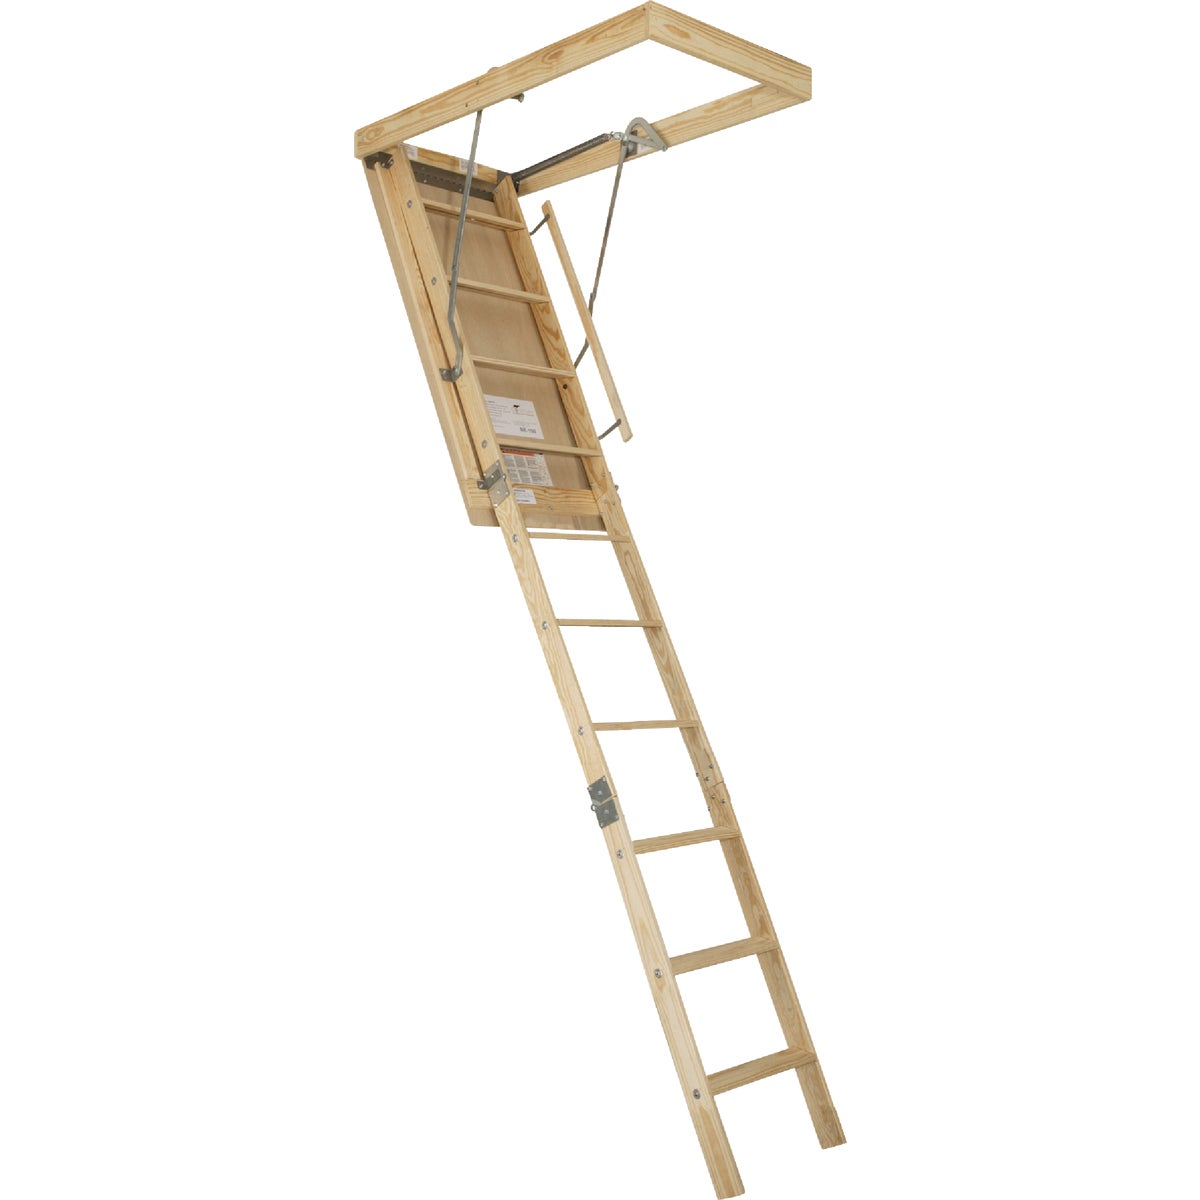 25X105 FIRE ATTIC STAIR - BE89F by Louisville Ladder